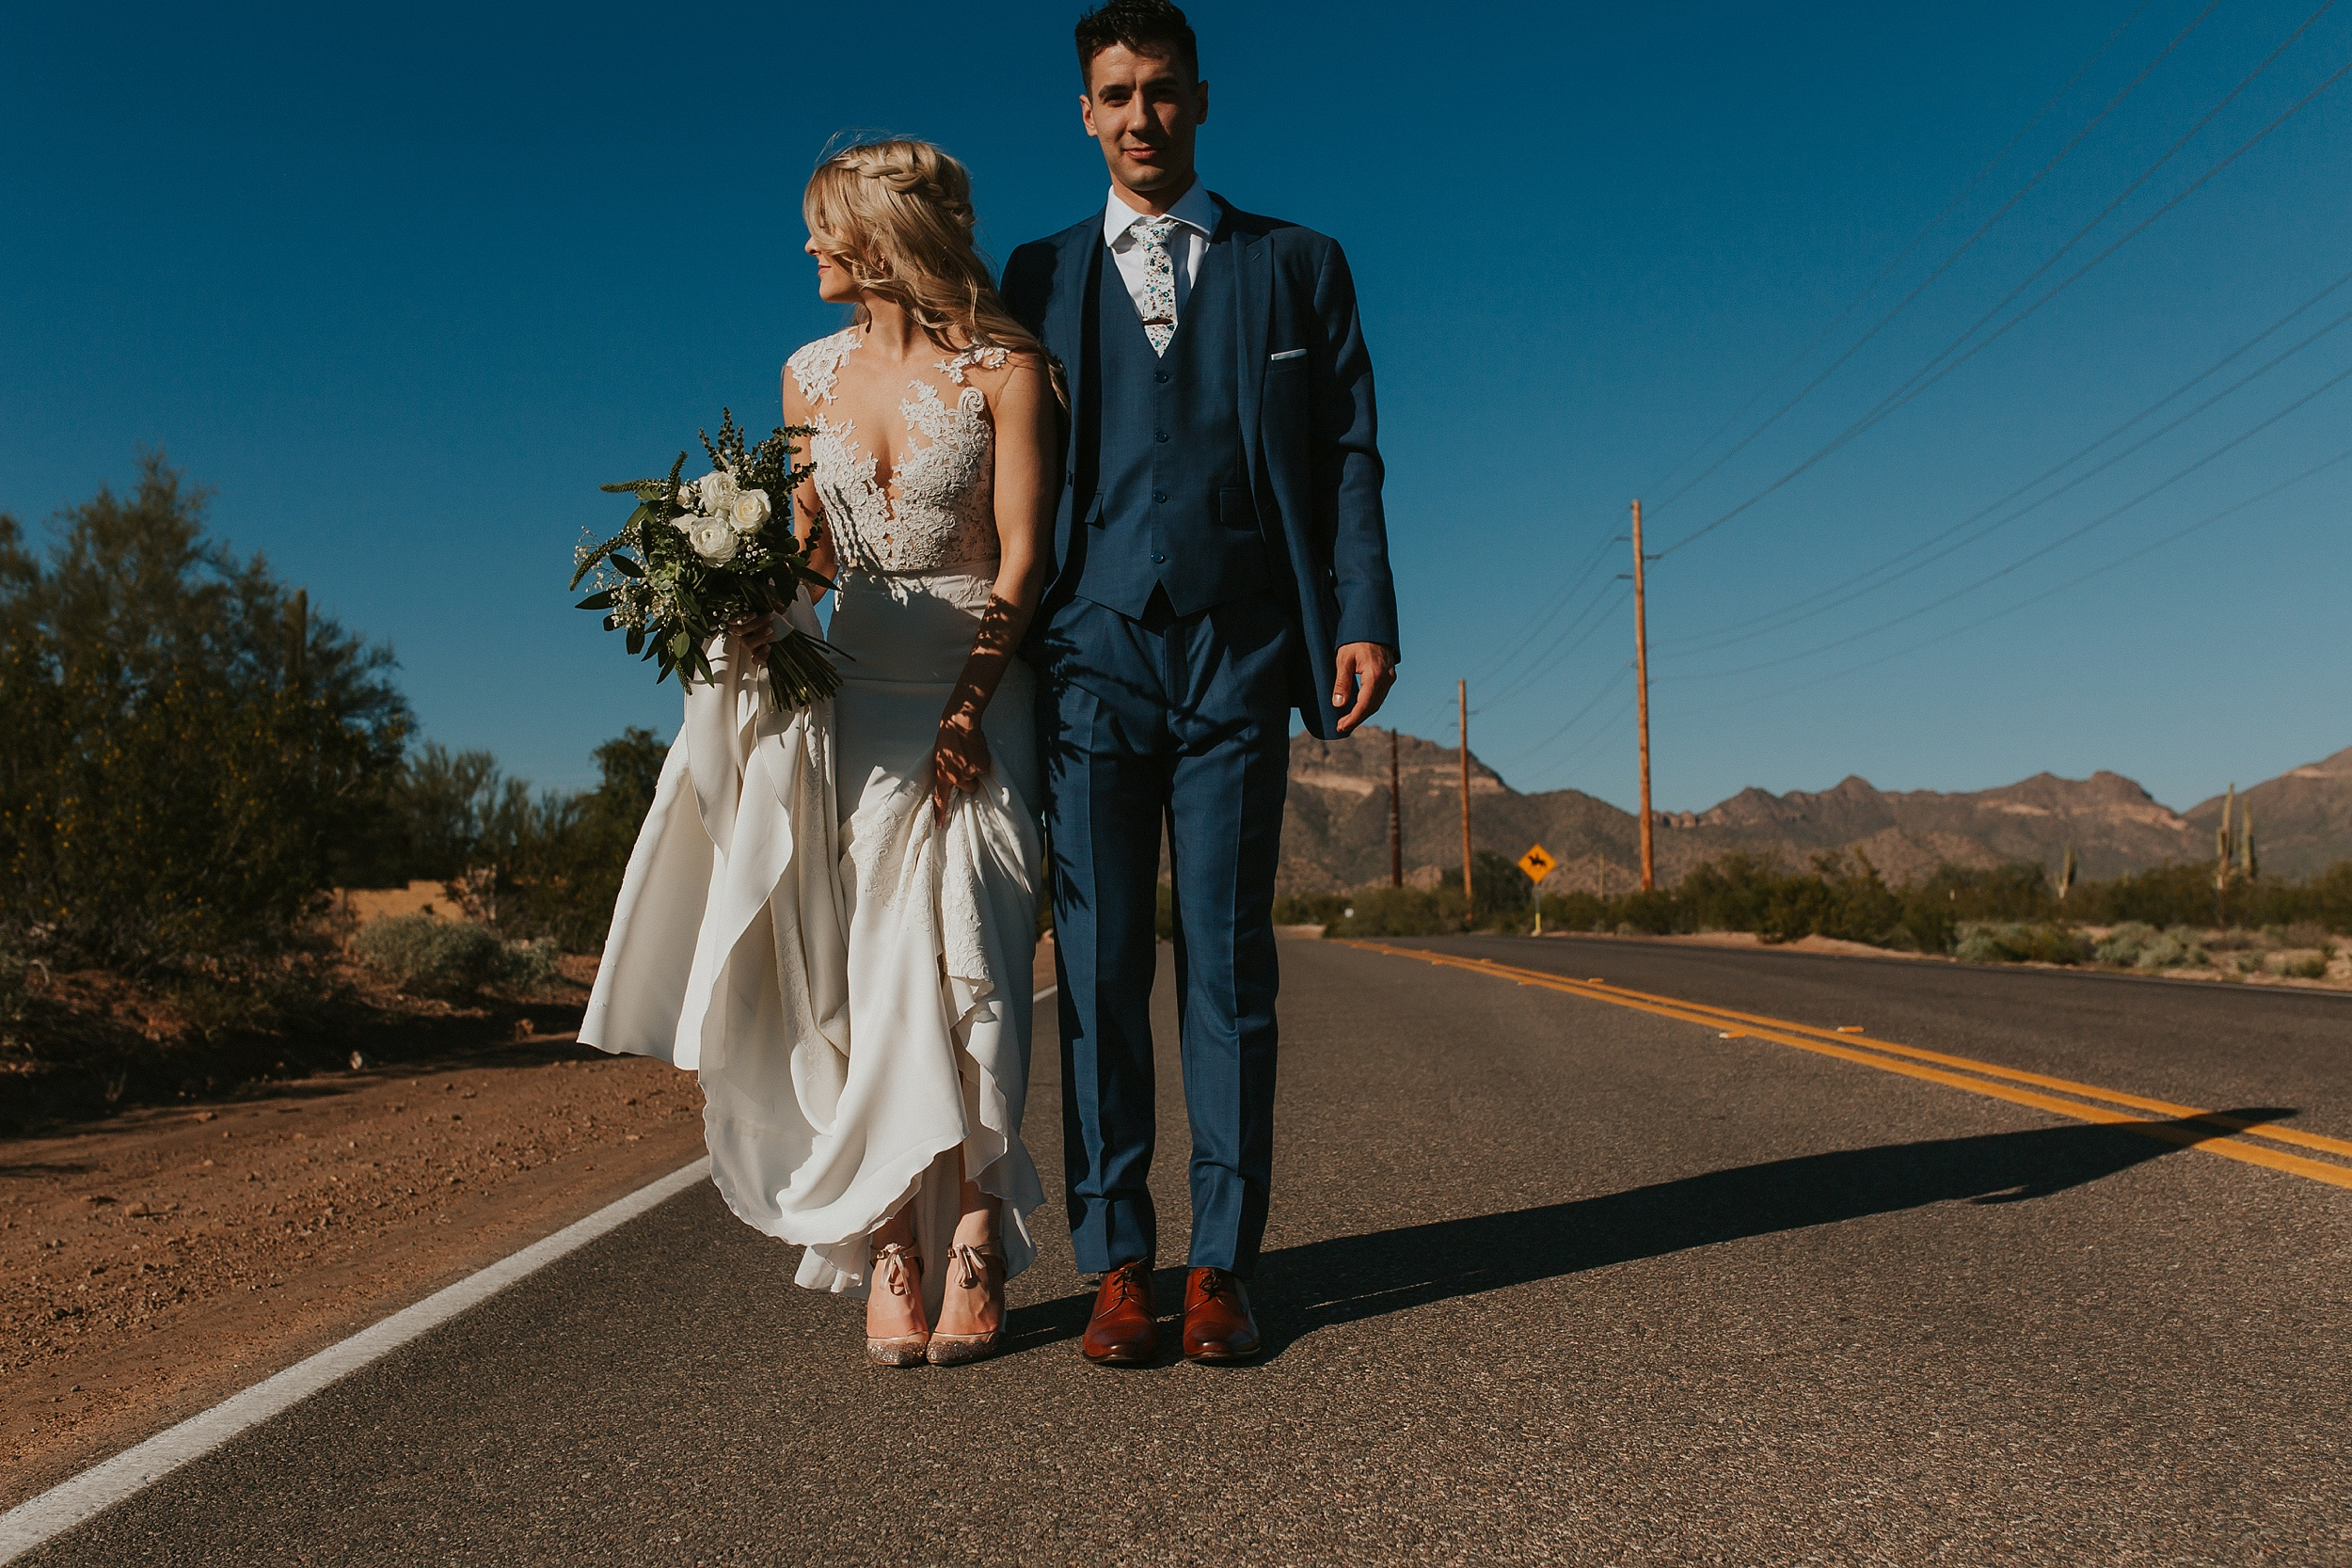 Meg+Bubba_Wedding_Bride+Groom_Portraits_Arizona-6.jpg